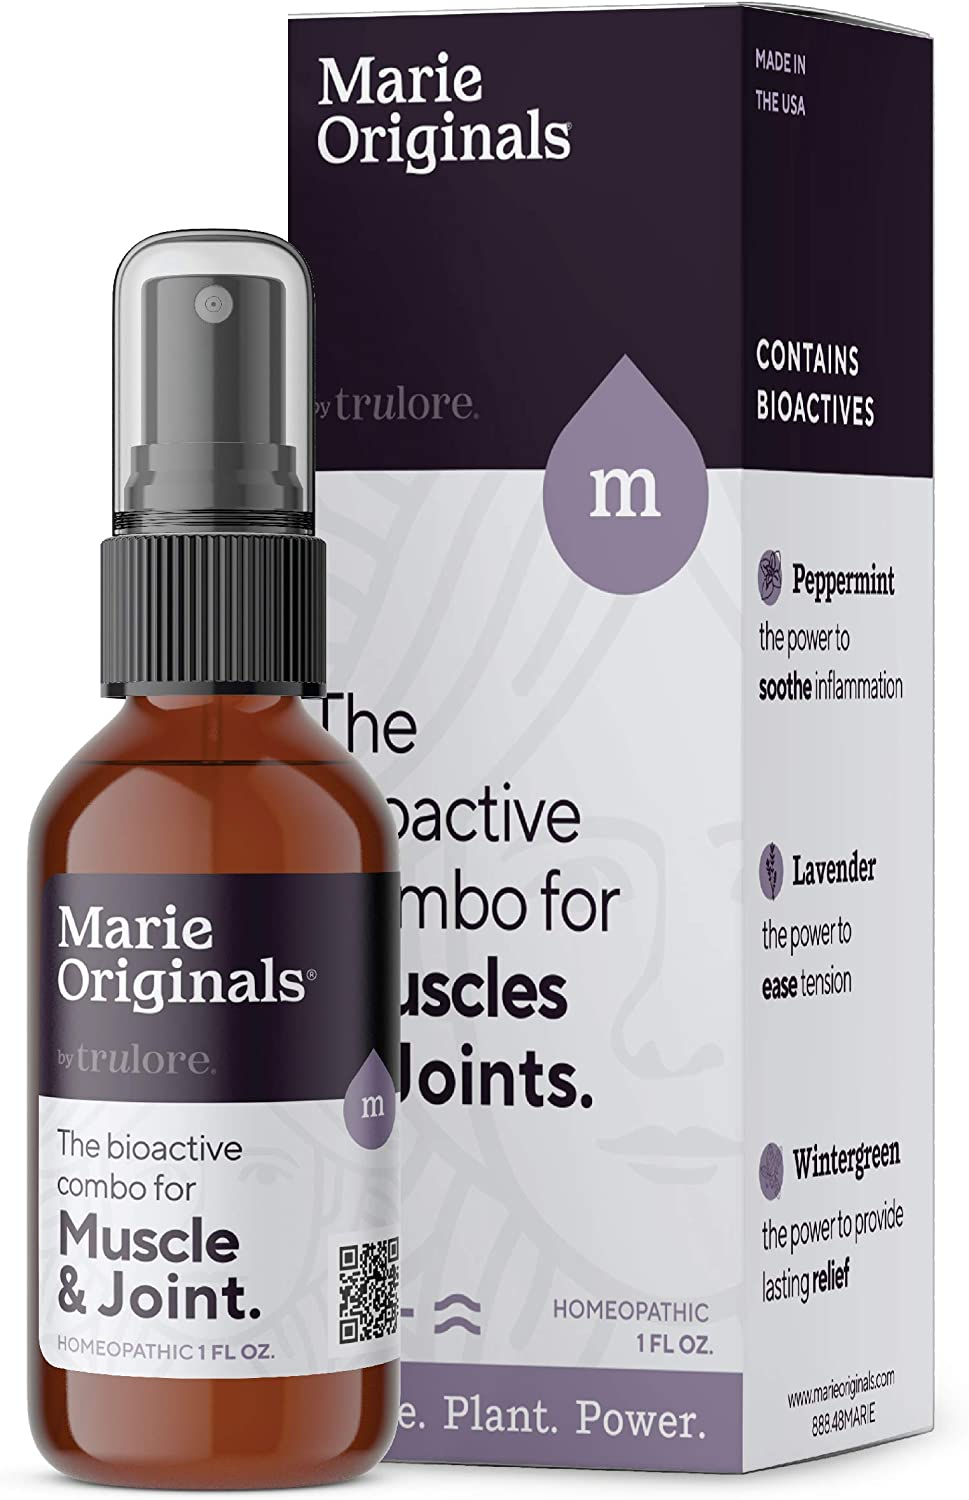 Marie Originals All Natural Muscle and Joint Rub, Alleviates Ache and Sore Muscles, Soothes and Calms Pain and Discomfort. Essential Oil Blend with Juniper, Peppermint, Lavender and Wintergreen